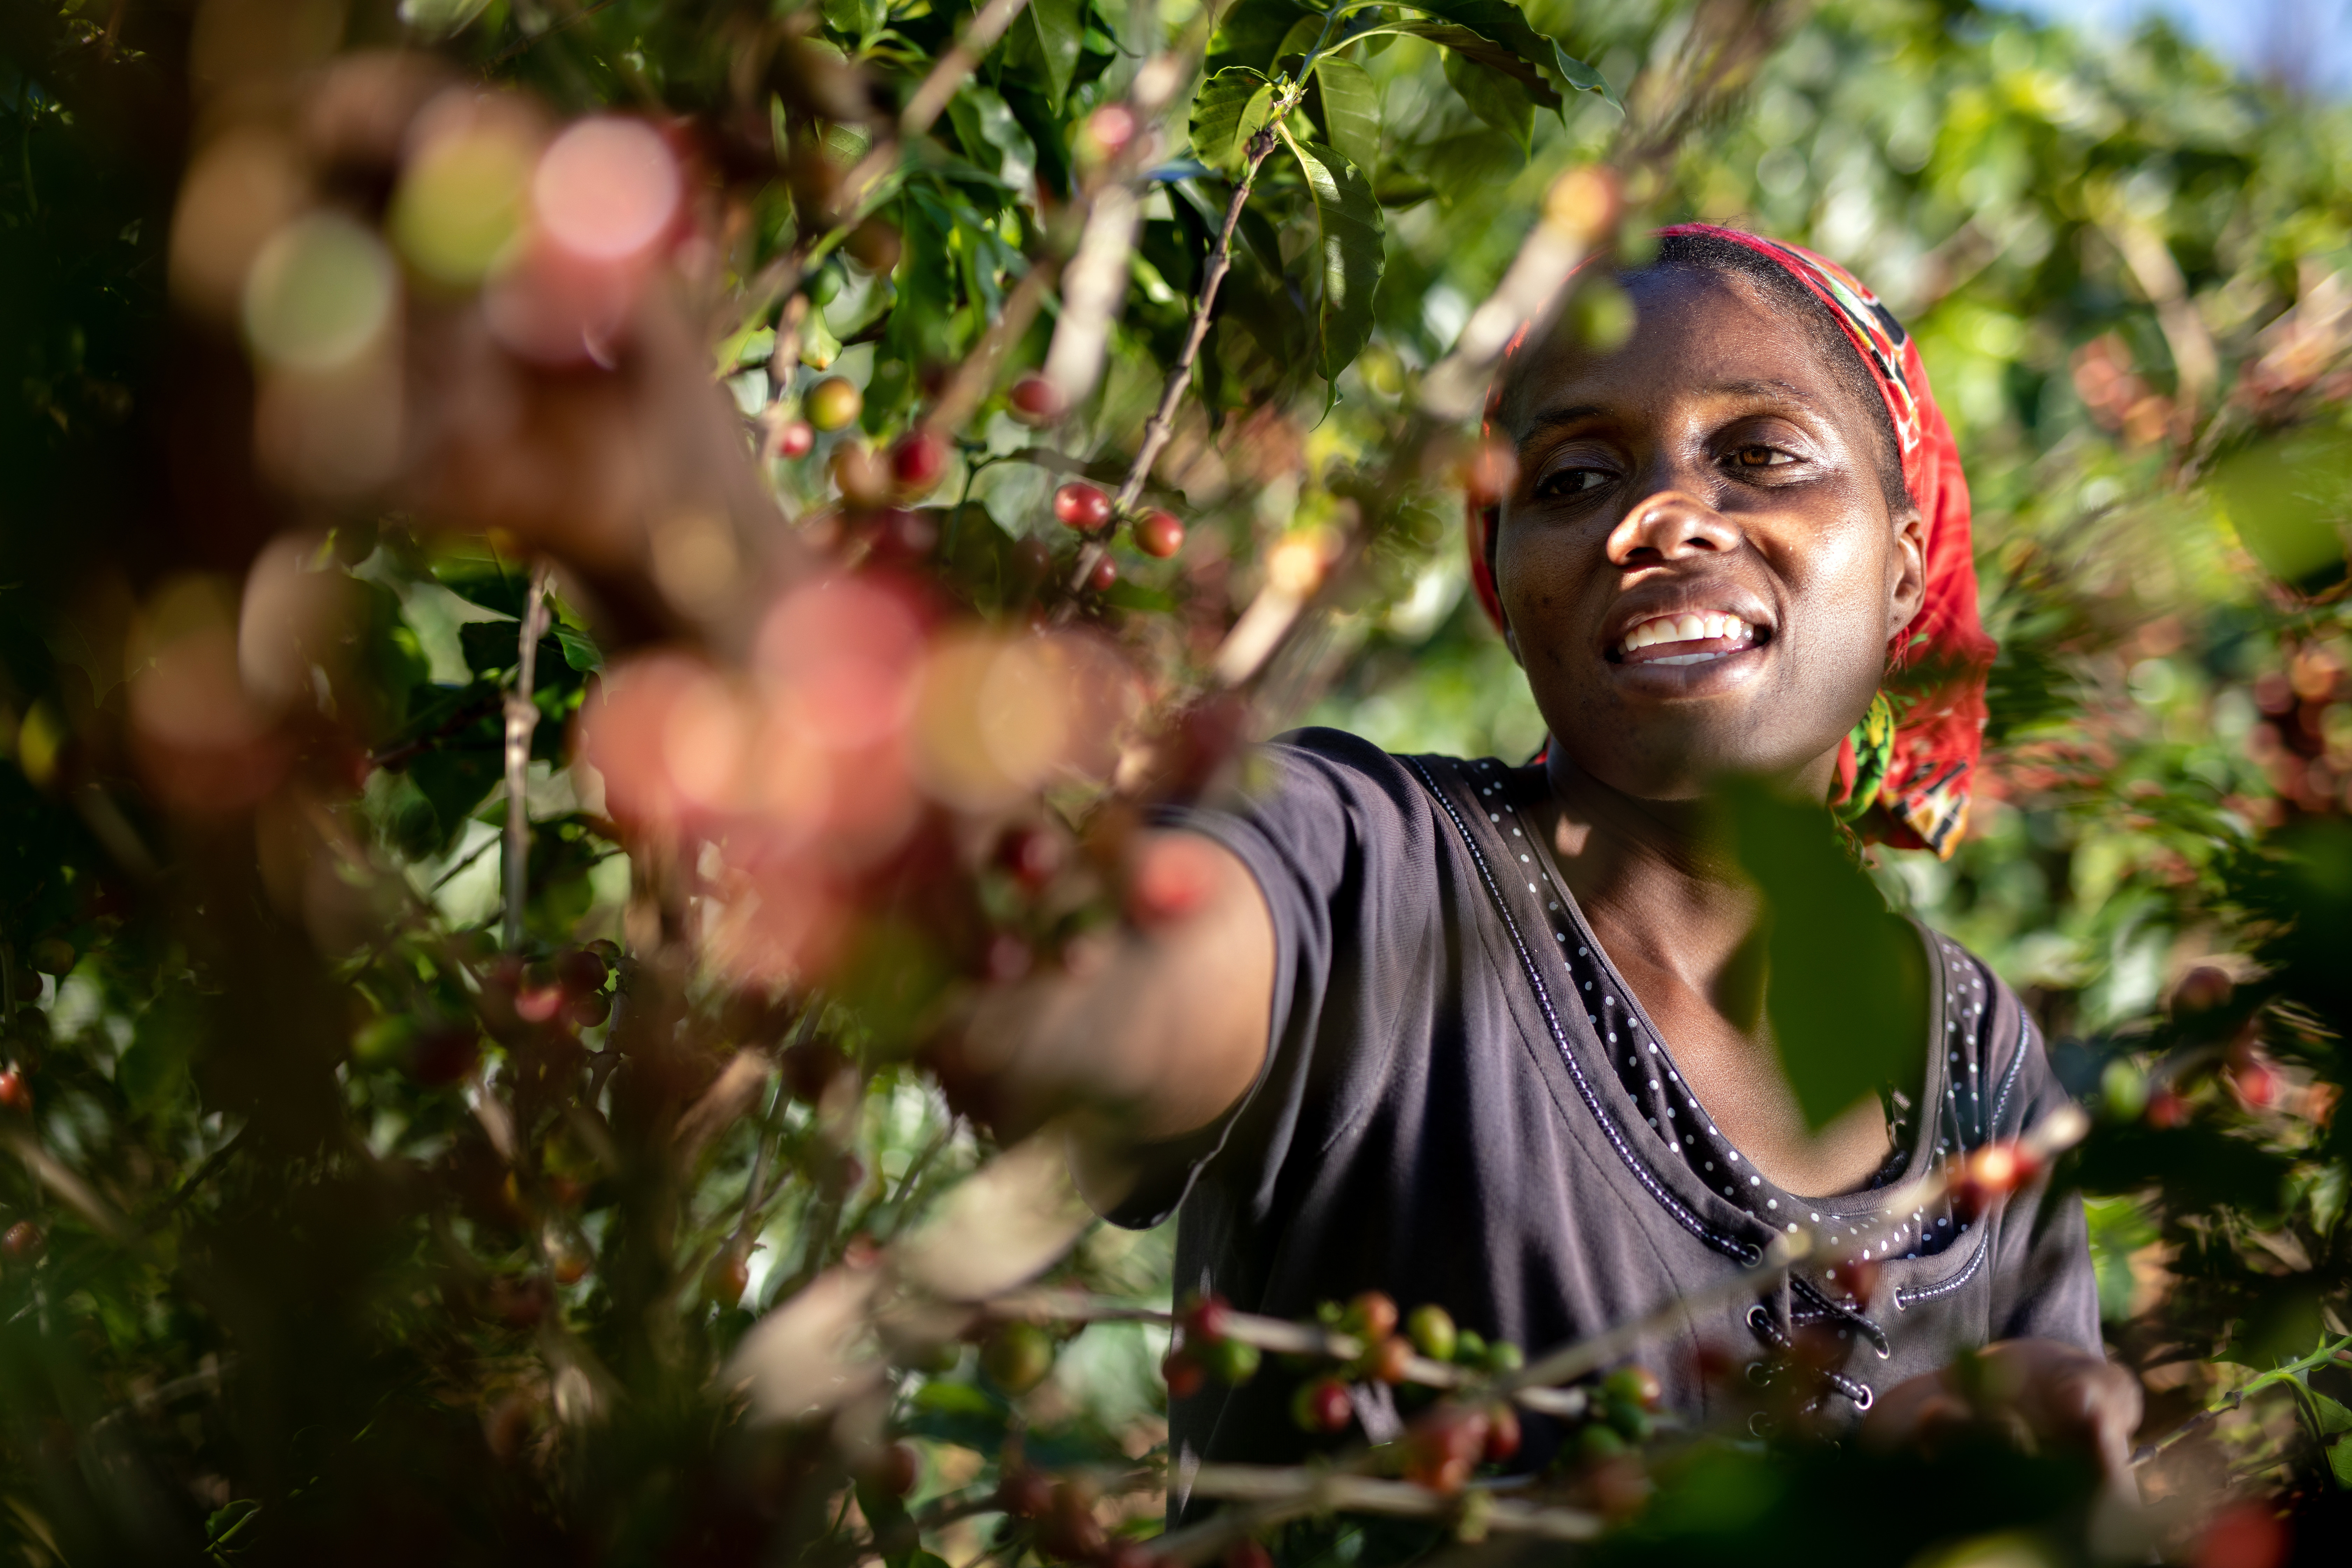 Jesca Kagai, a 35years old farmer, is harvesting coffee cherries in her farm situated in the Honde Valley, eastern Zimbabwe, near the border with Mozambique, on June 19th, 2018. After being voted second best coffee producer in Mutasa district, and 5th in Manicaland province as a whole, she recently joined the AAA Academy, a fair trade program Nespresso sets up to revive coffee culture in Zimbabwe.